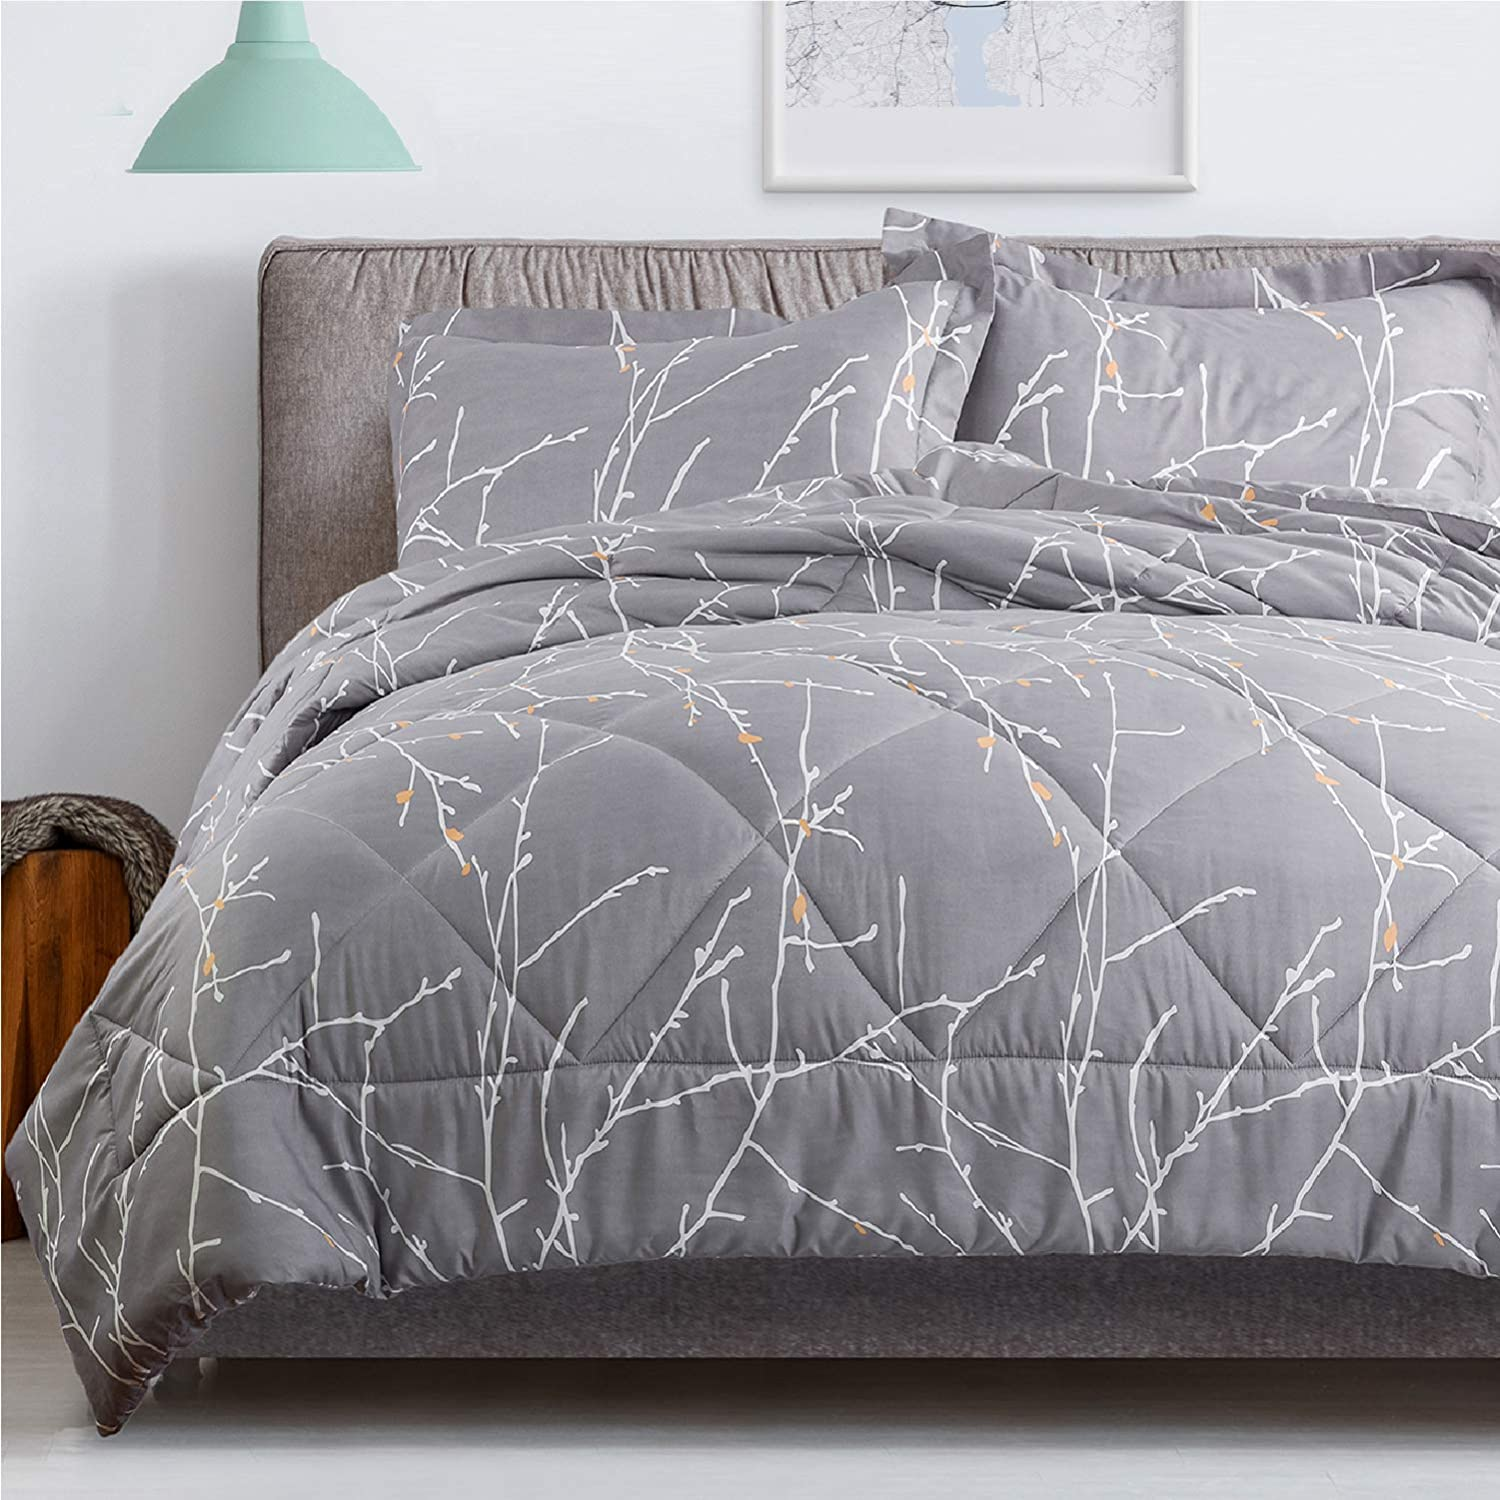 Bedsure Tree Branch Floral Comforter Full/Queen Size Grey Down Alternative Comforter Duvet (